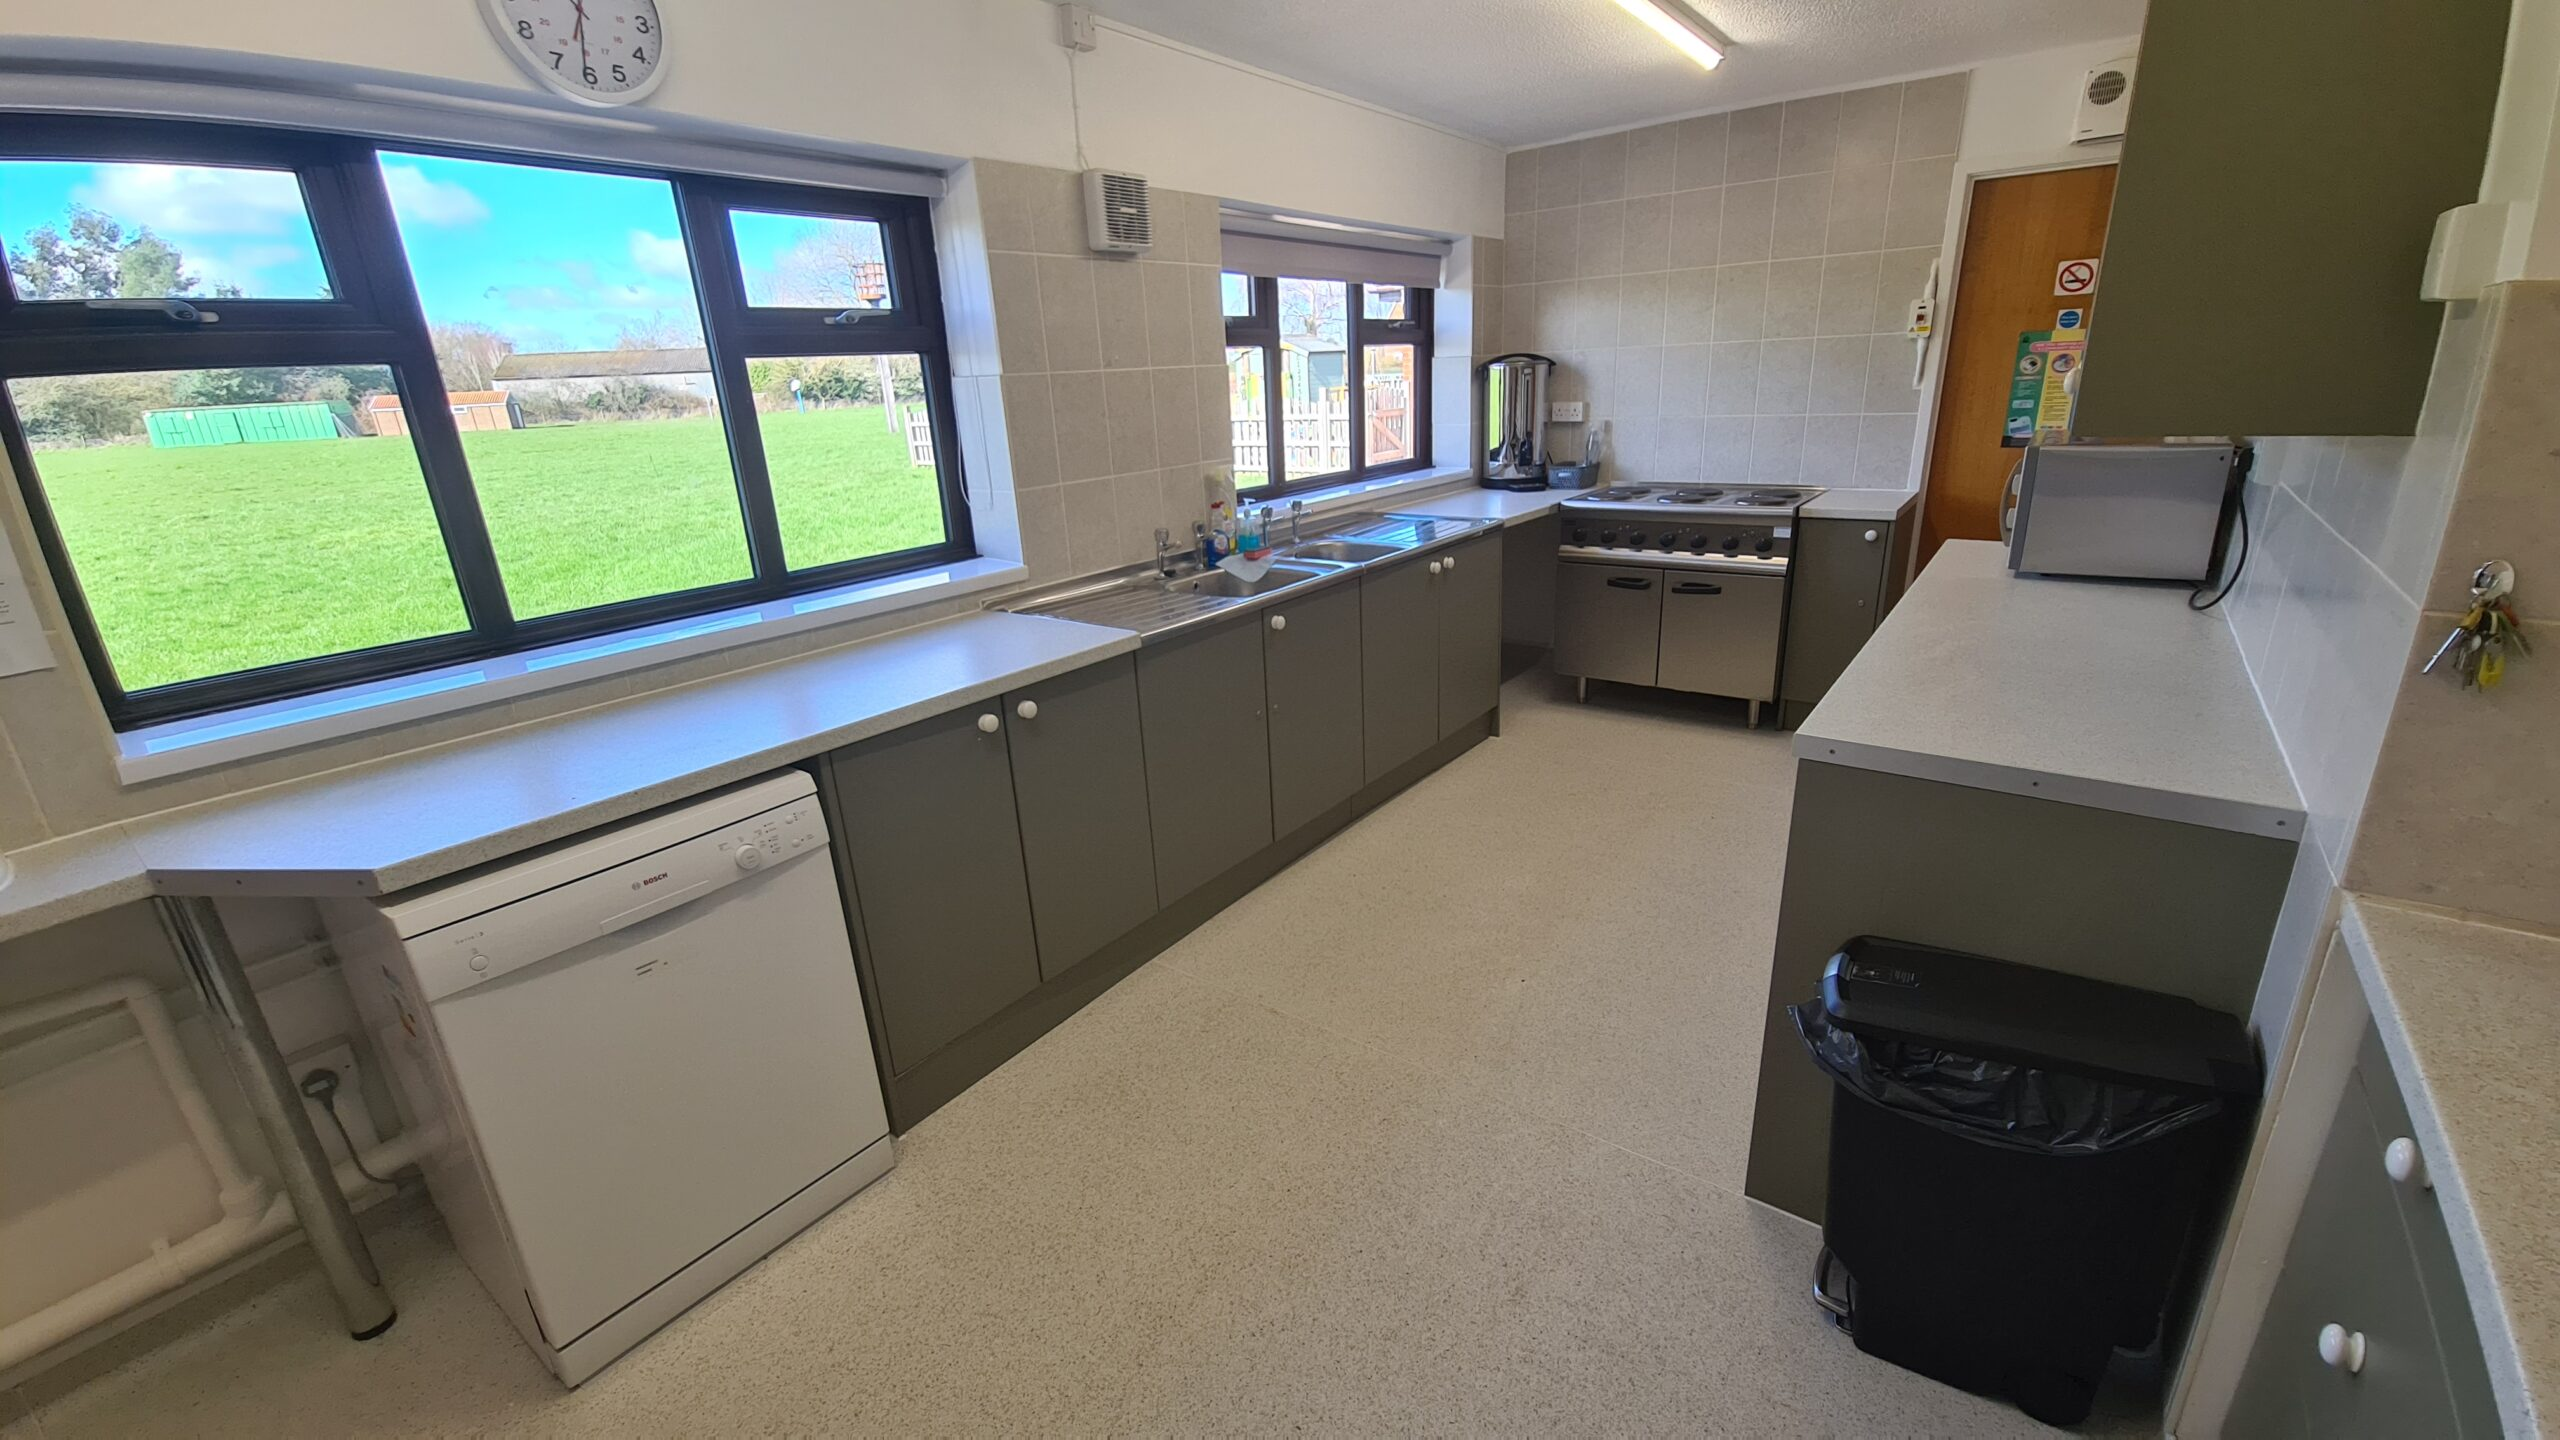 The Kitchen from hatch end